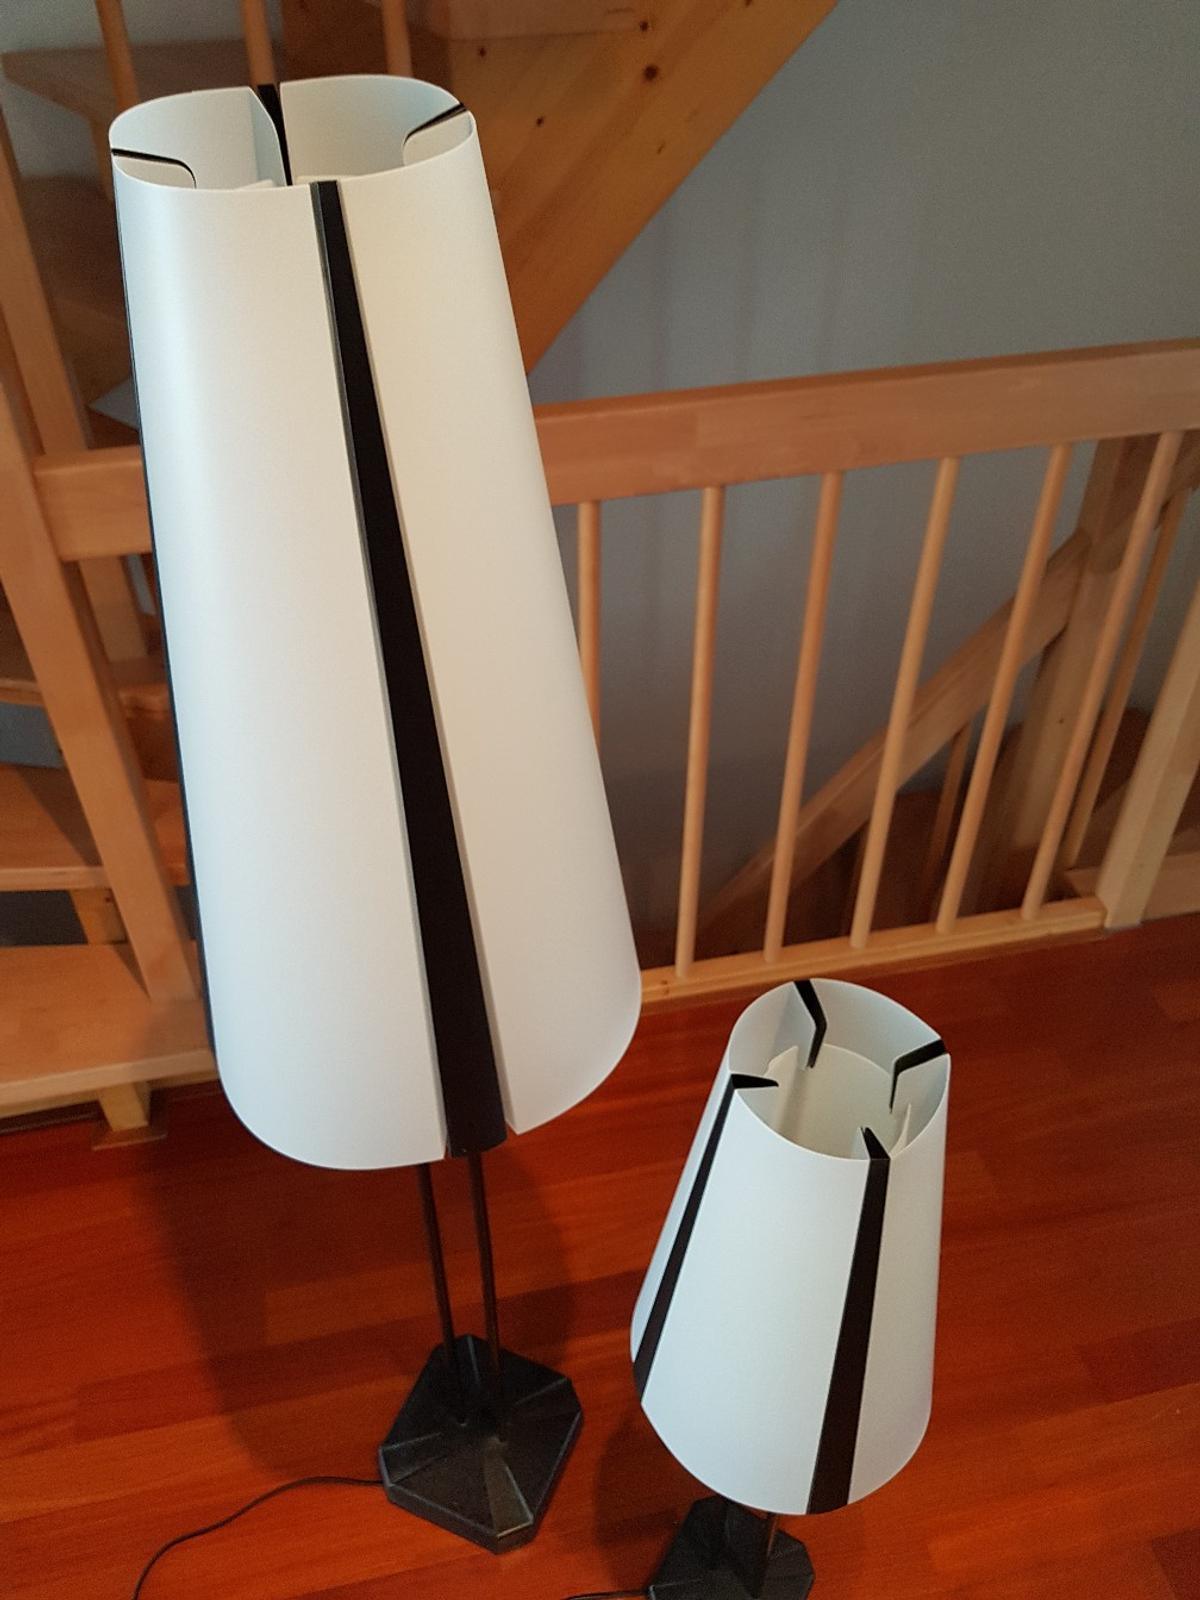 Ikea Lampen In 53332 Bornheim For 30 00 For Sale Shpock